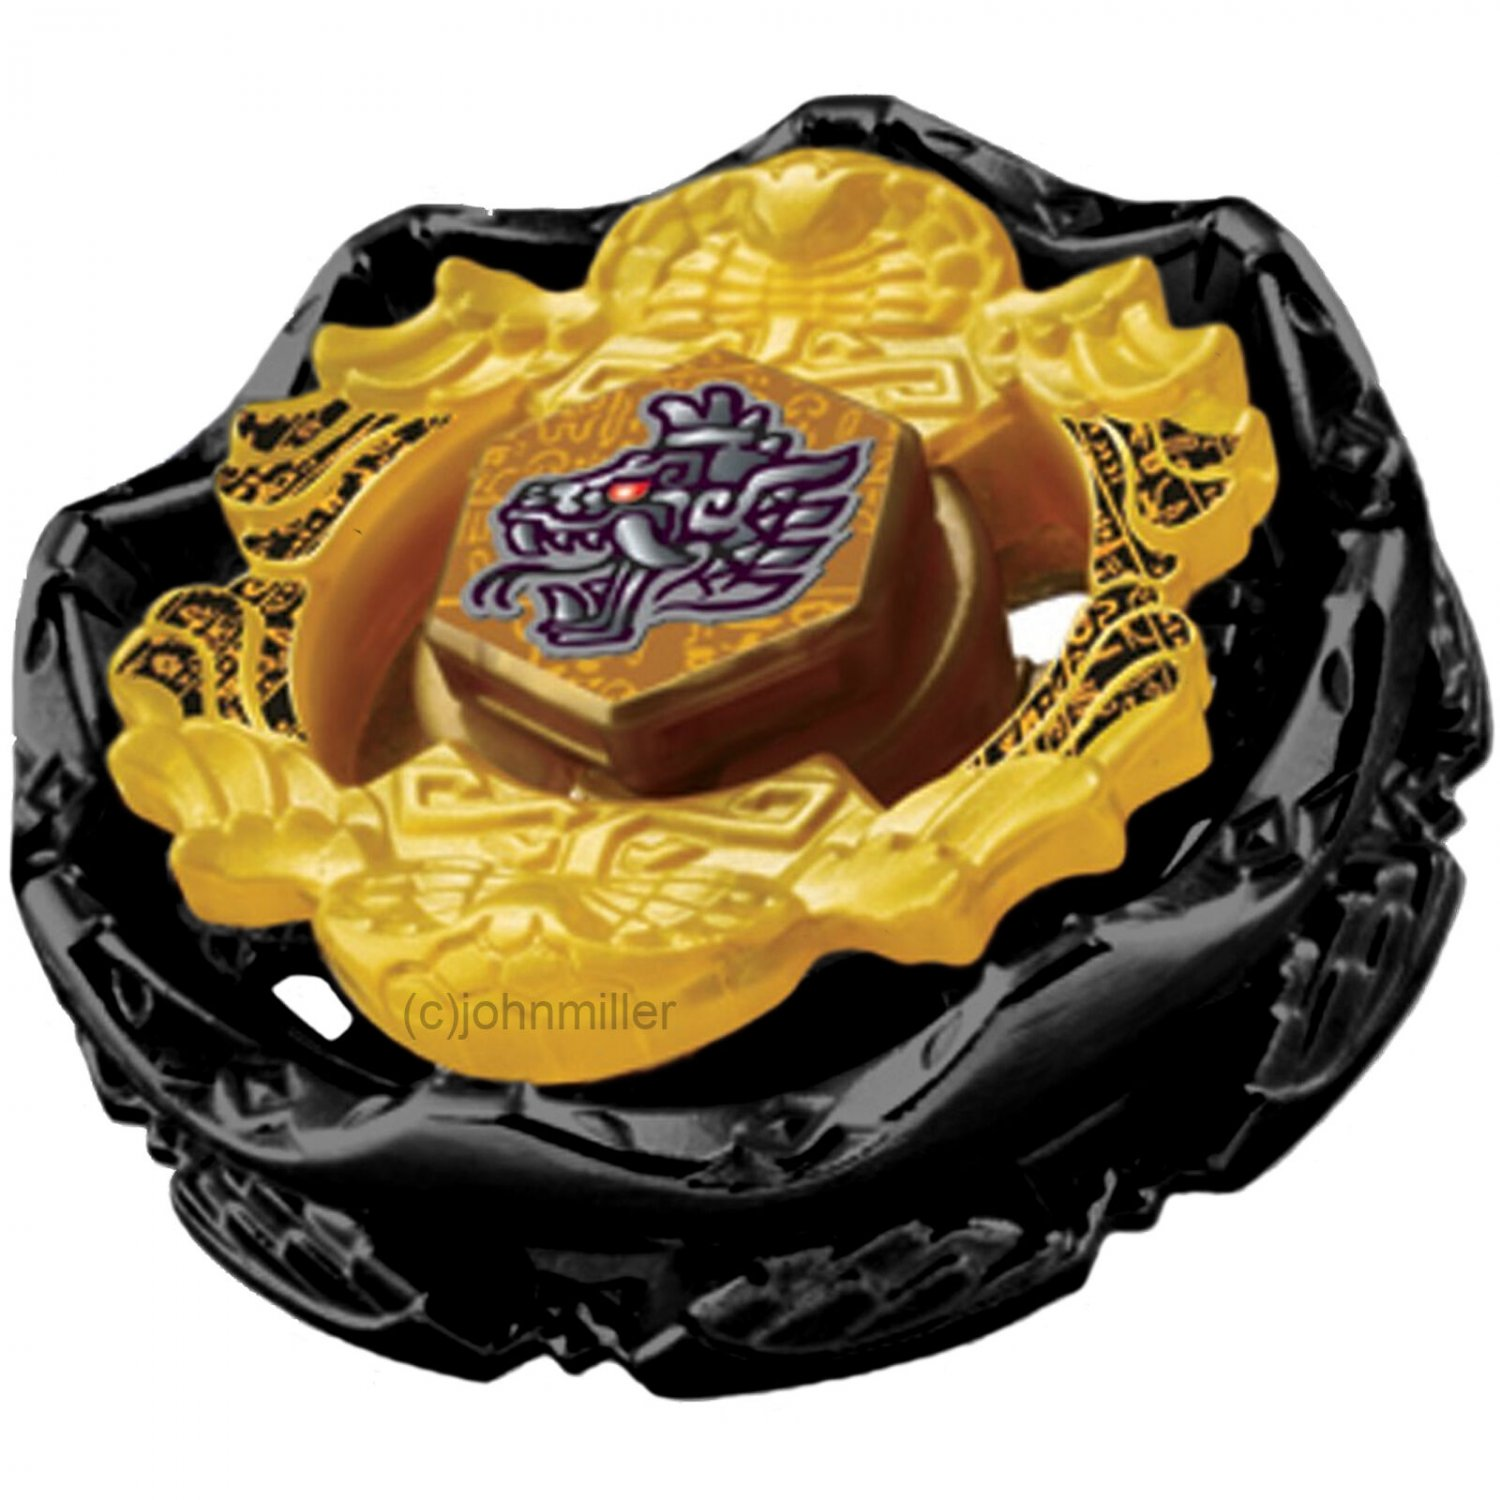 Kolo Kolo Limited Edition Death Quetzalcoatl BLACK APOCALYPSE Version Beyblade USA SELLER